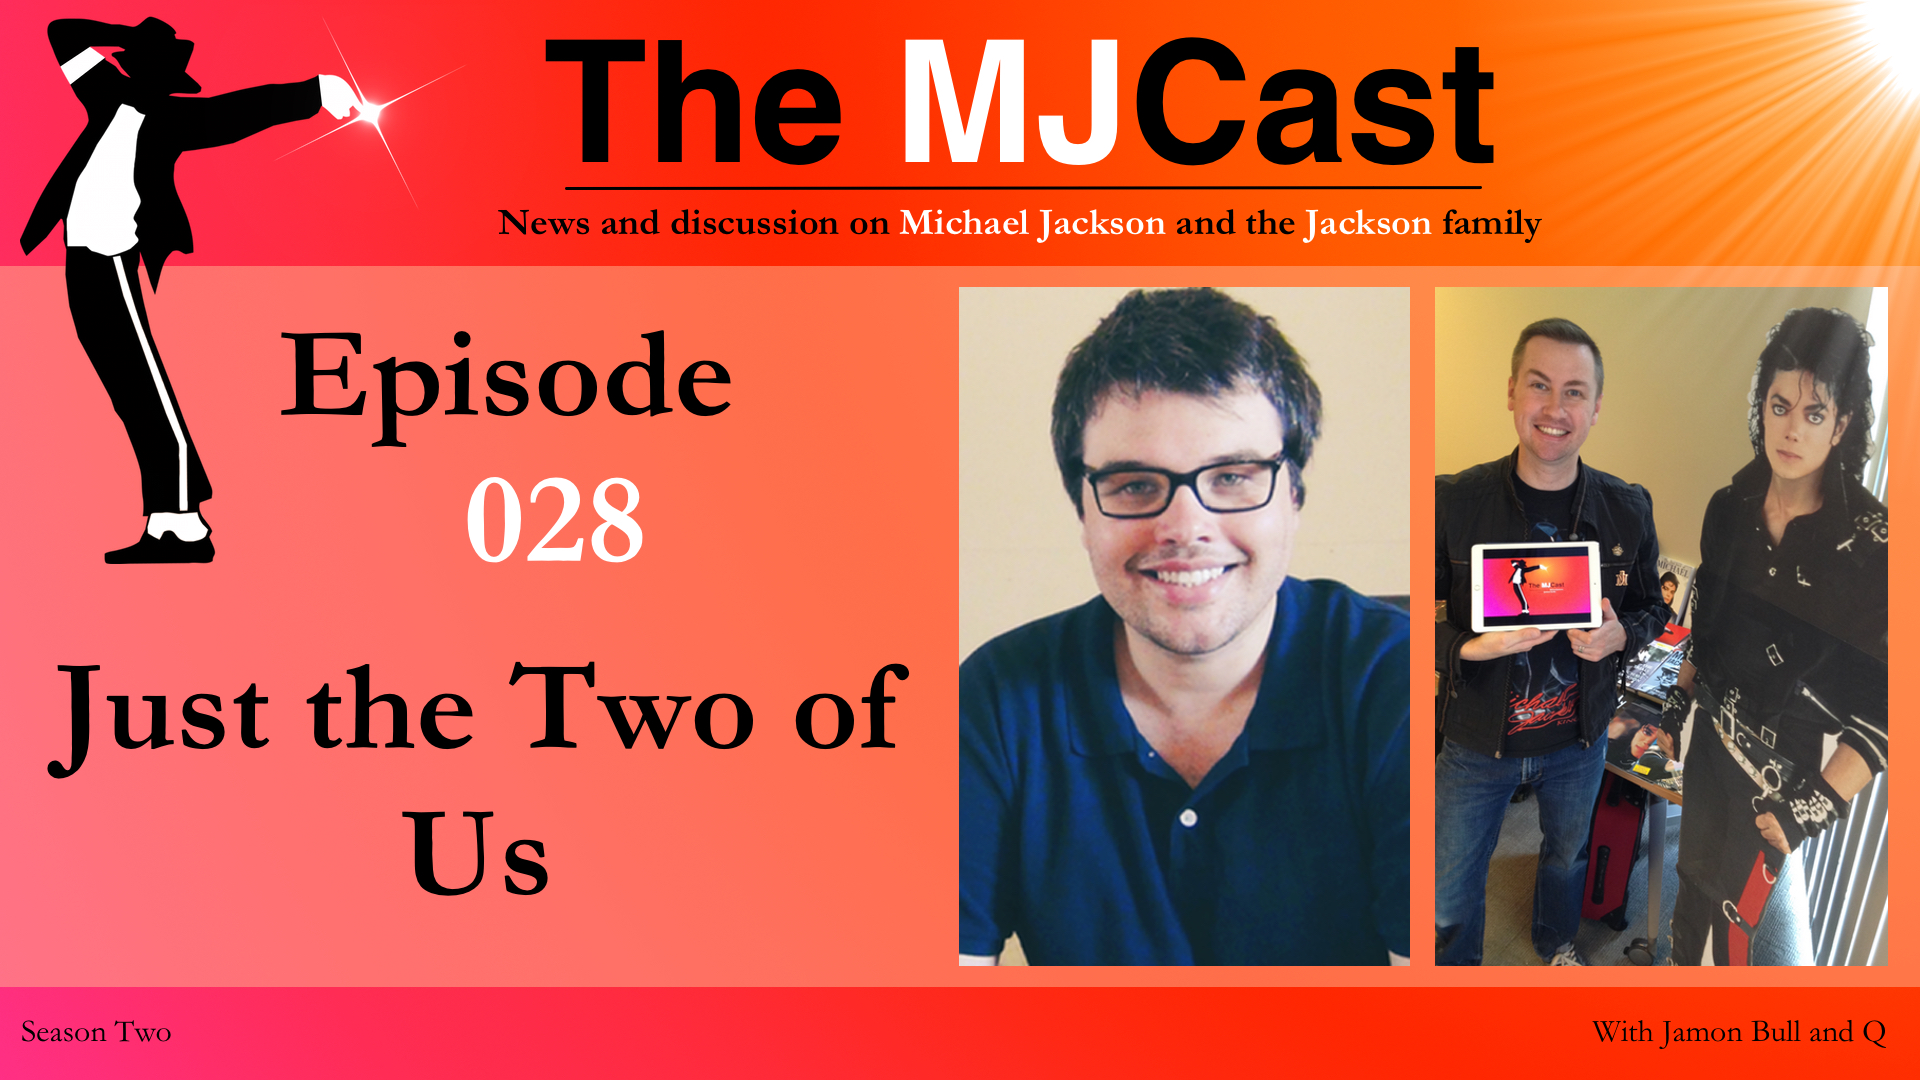 Episode 028 - Just the Two of Us Show Art